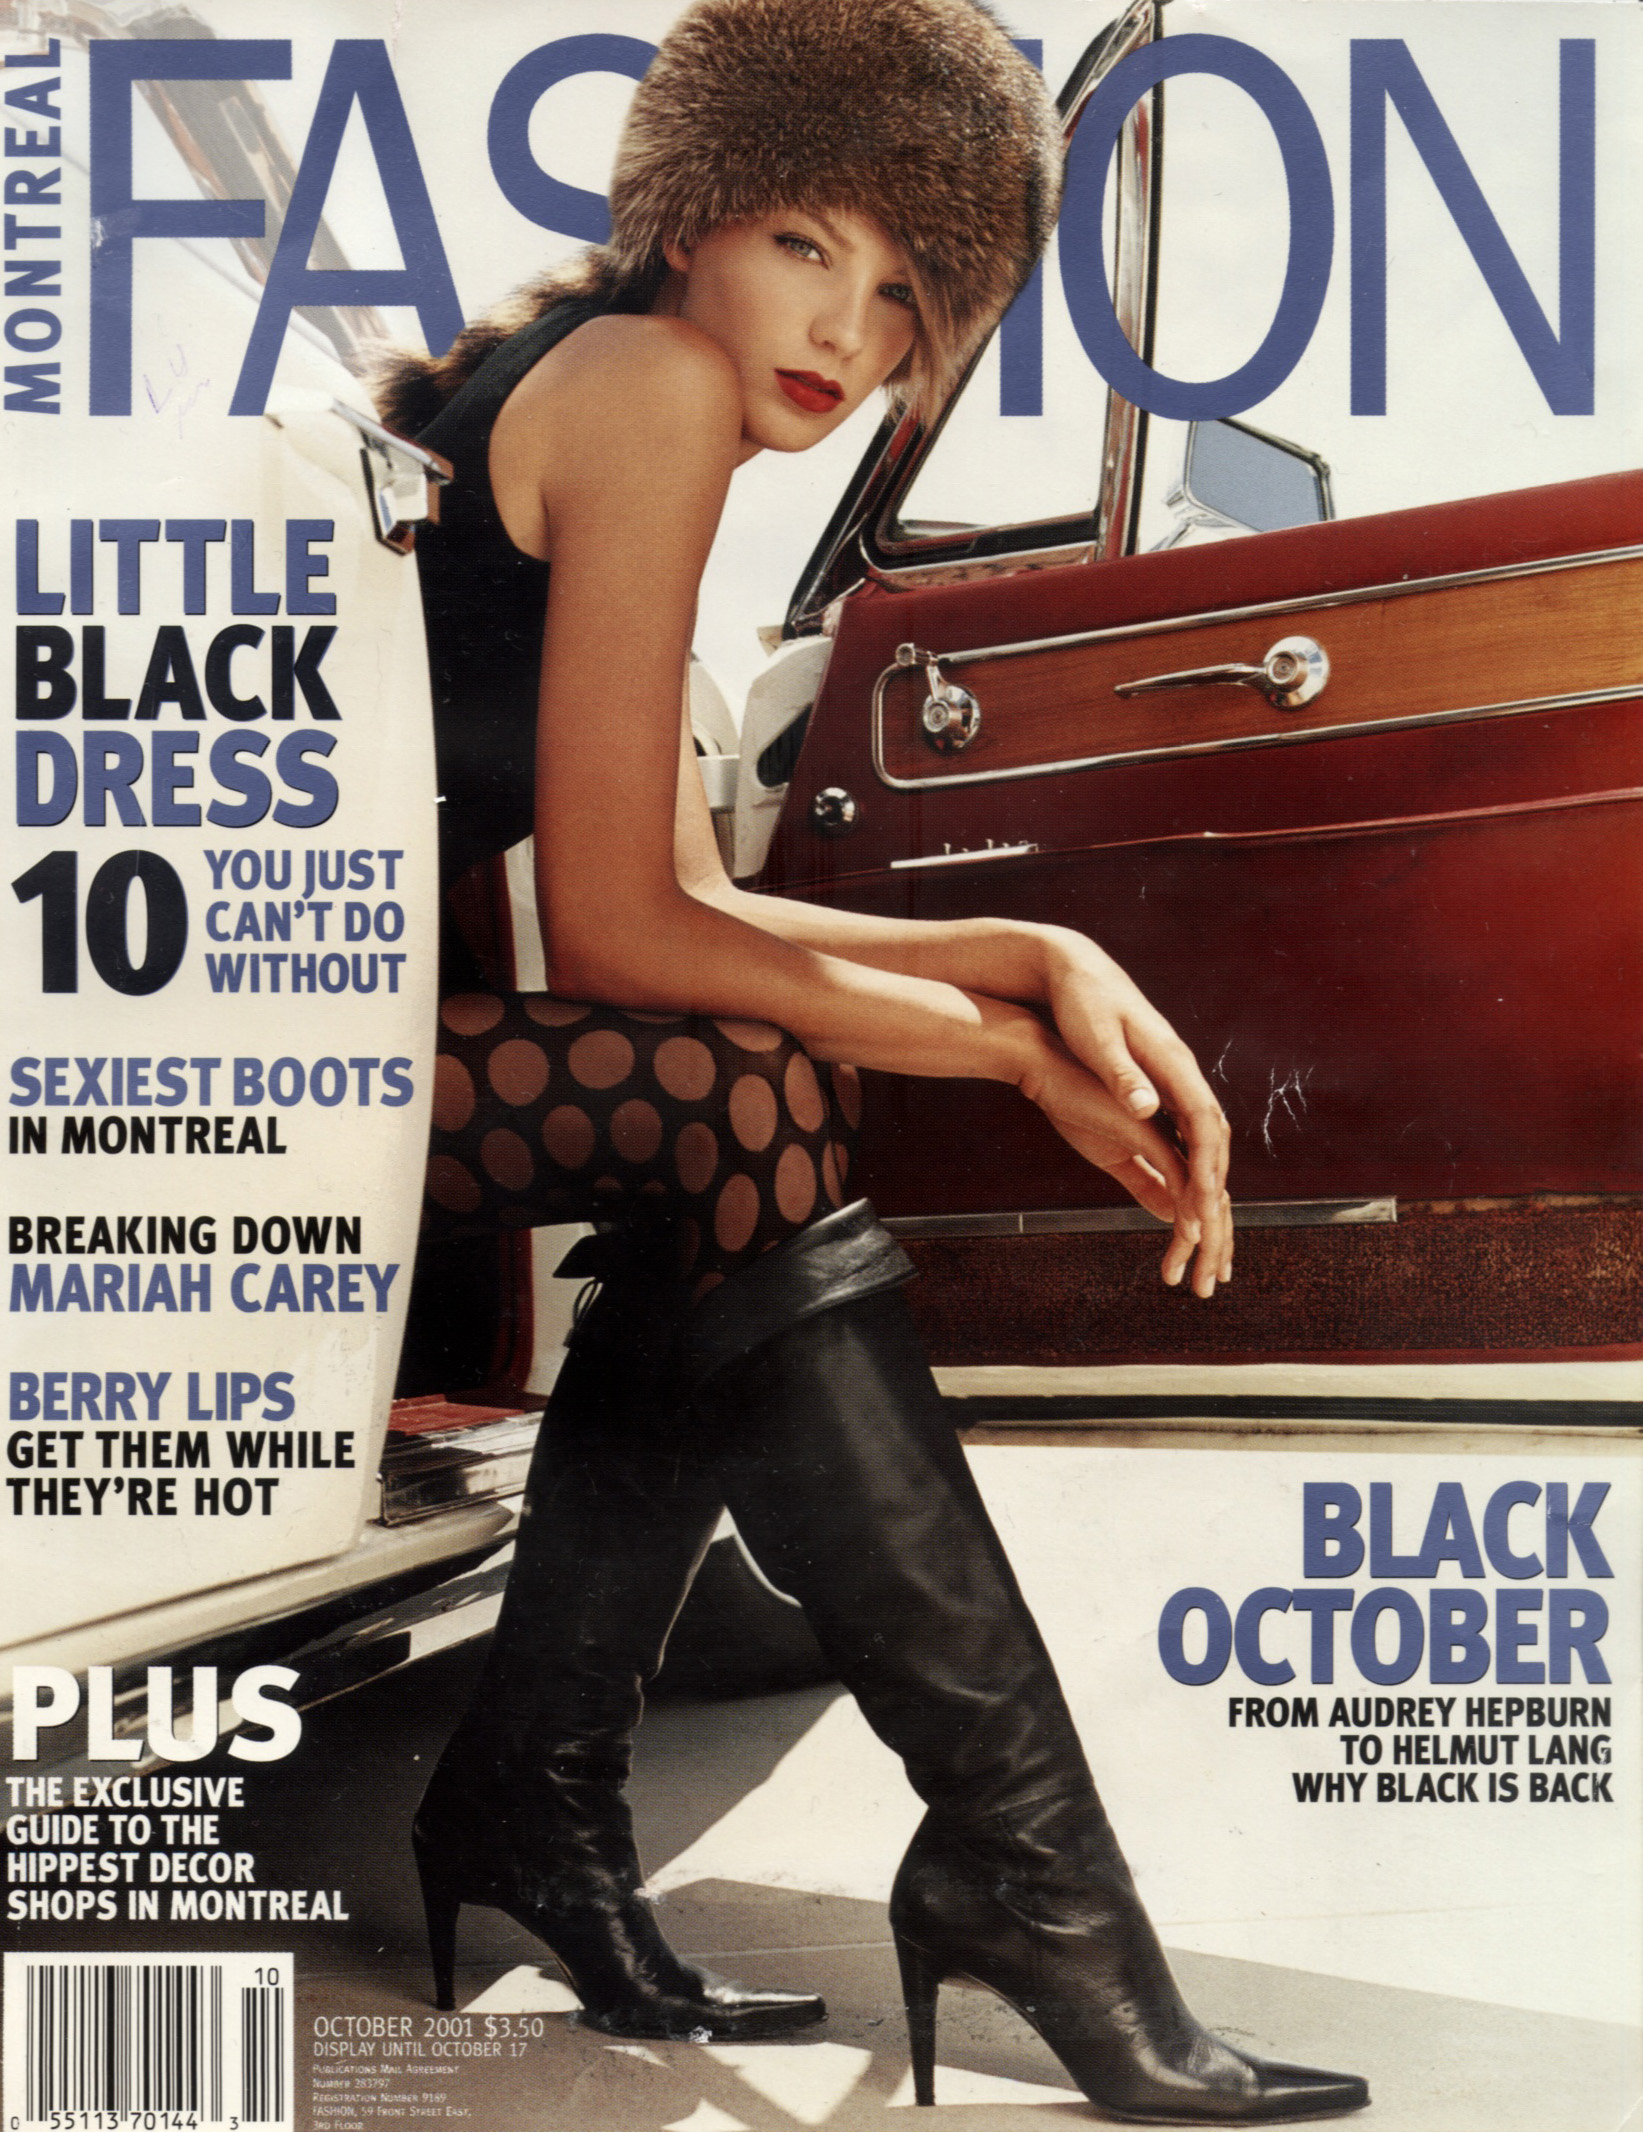 http://media.onsugar.com/files/ons1/313/3137943/31_2009/e1d4f1f71218e77b_58515_daria_FashionMlt_Oct2001_cover_122_512lo.jpg